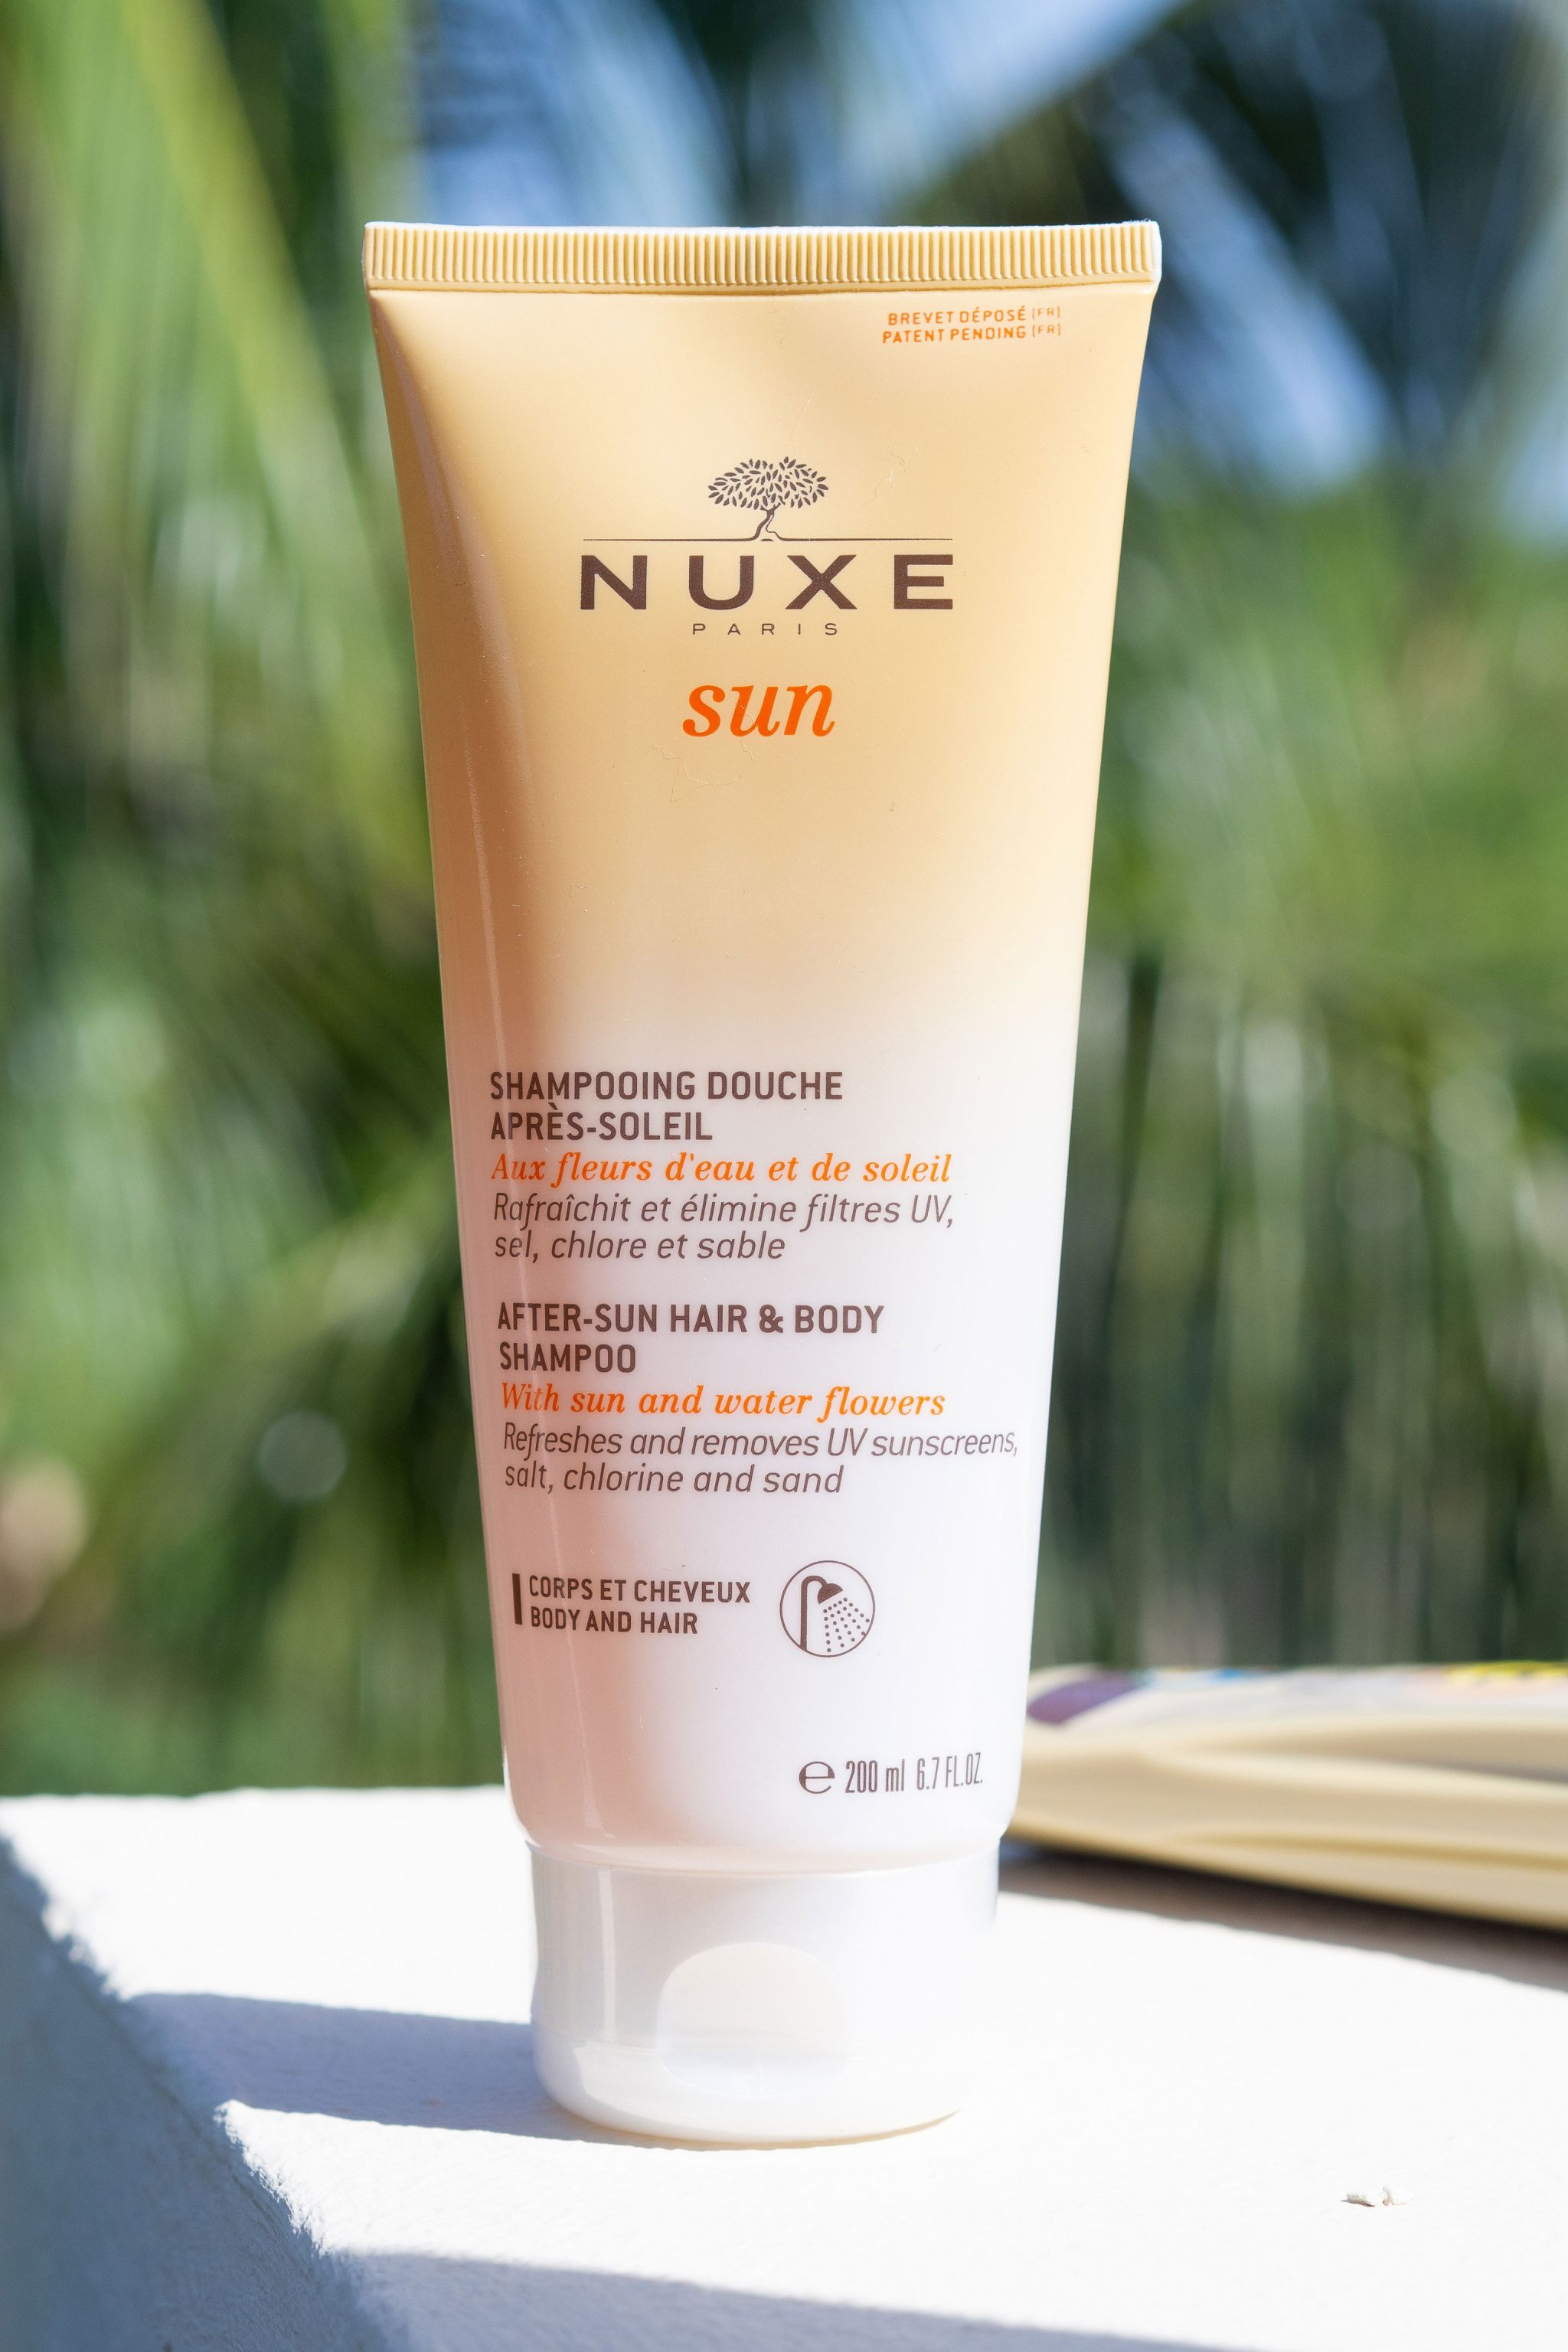 NUXE After Sun Hair and Body Shampoo Review